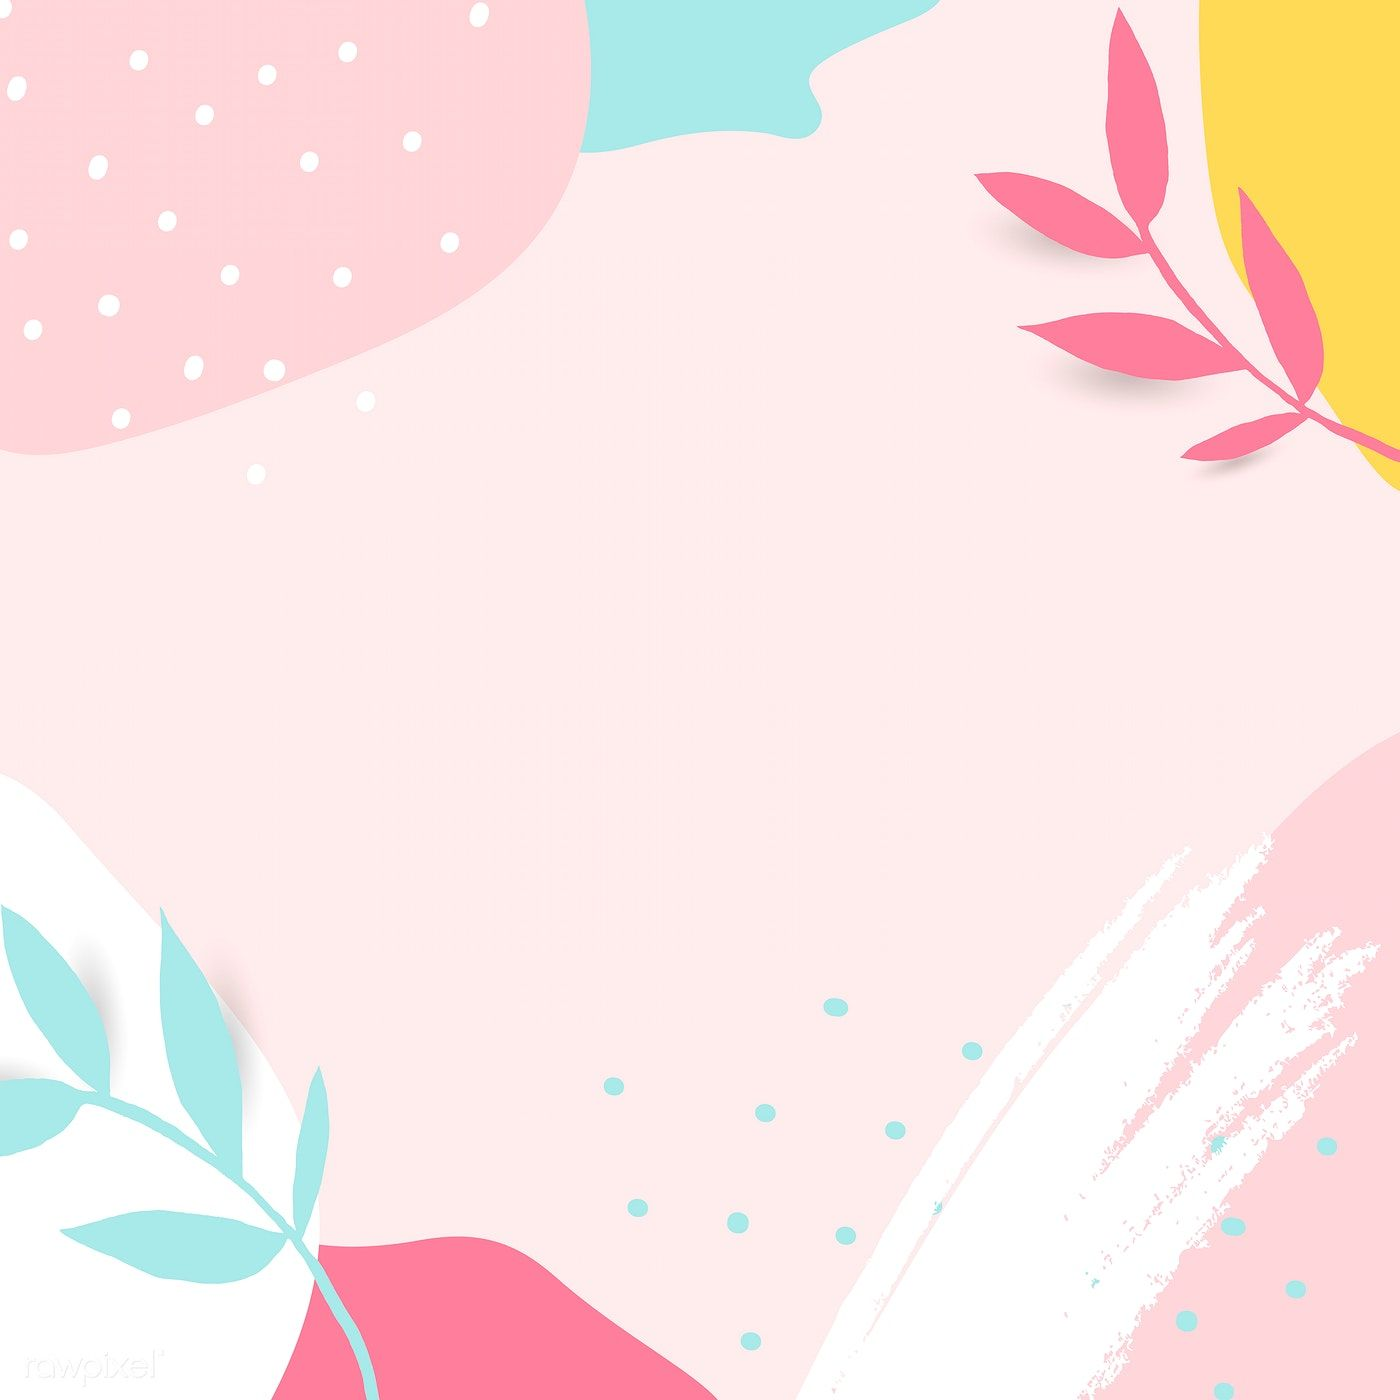 Download Premium Vector Of Colorful Leafy Memphis Frame Vector 1217074 Vector Background Pattern Graphic Design Background Templates Pastel Background Wallpapers